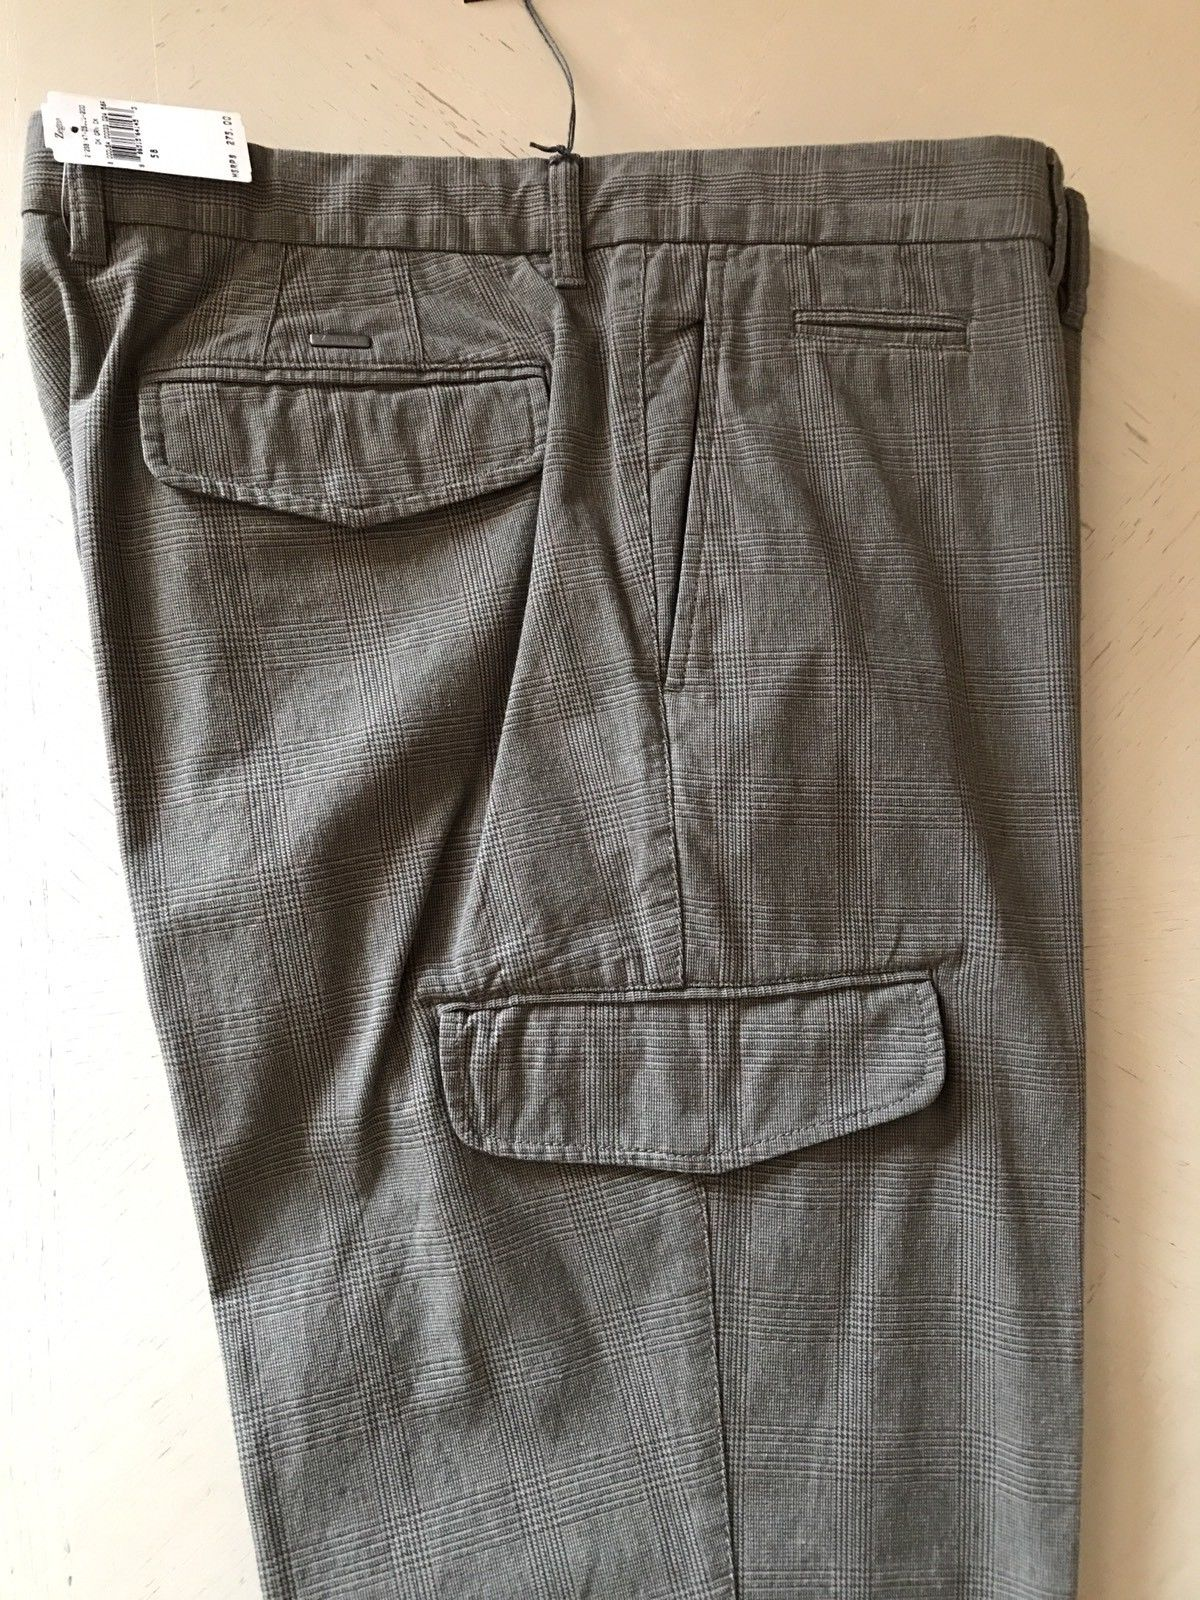 New $275 Zegna Spot Pants Slim Fit DK Green CK 40 US ( 58 Eur ) - BAYSUPERSTORE